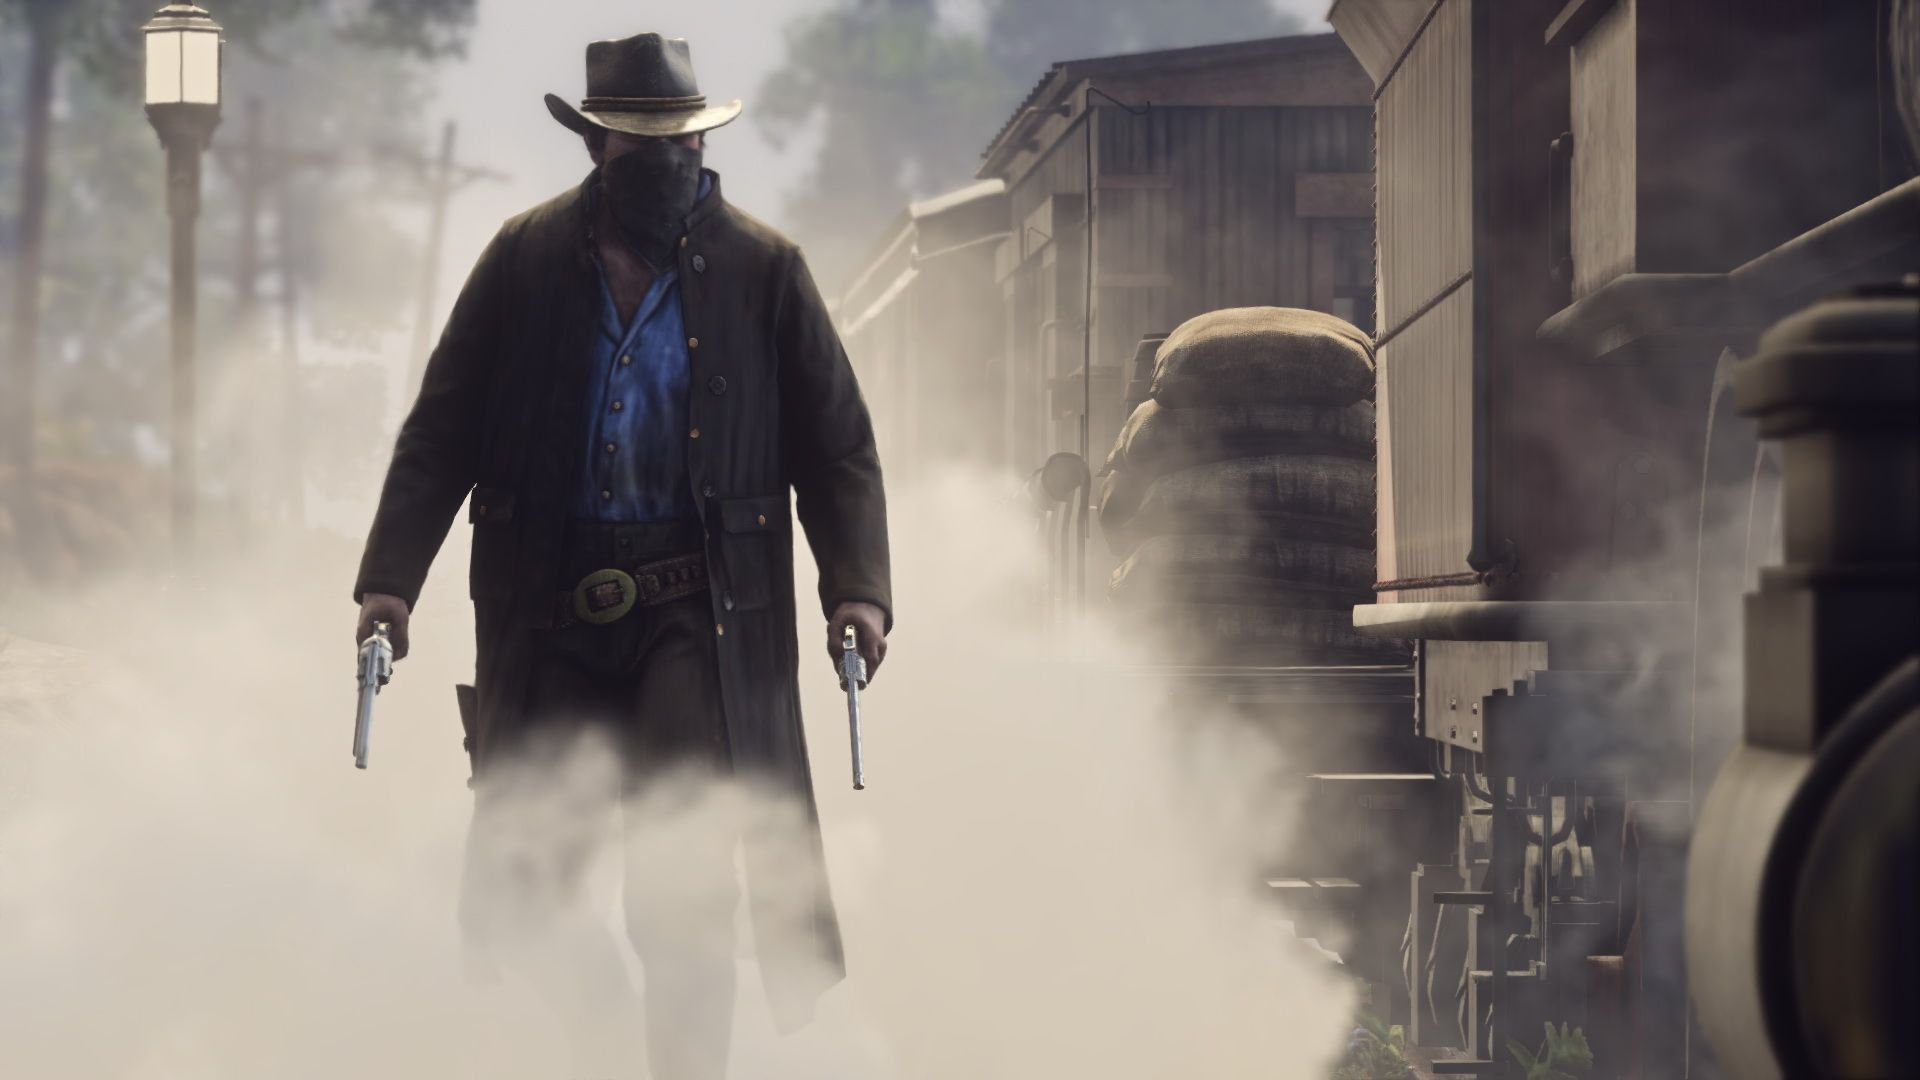 'Red Dead Redemption 2' launch experience means an update and an app